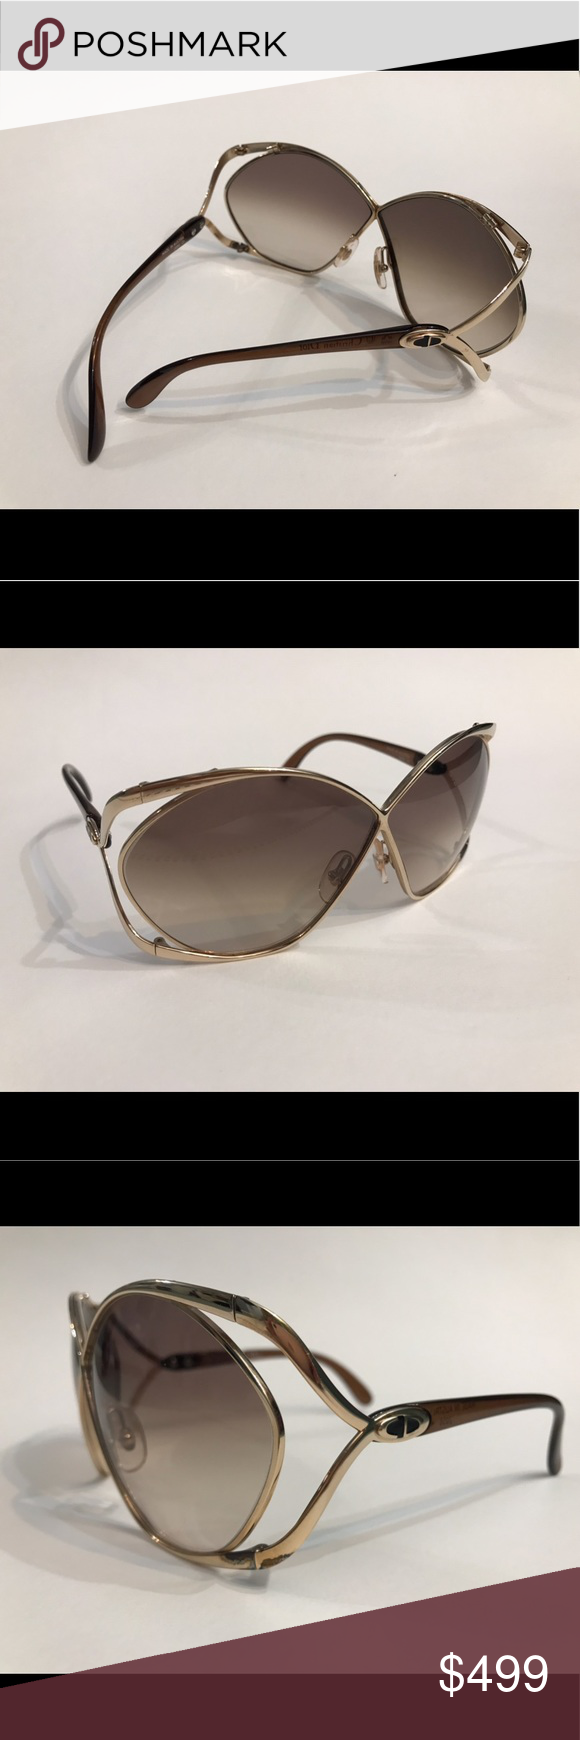 7a7a3535c62d Spotted while shopping on Poshmark  Christian Dior Sunglasses - Authentic!   poshmark  fashion  shopping  style  Dior  Accessories